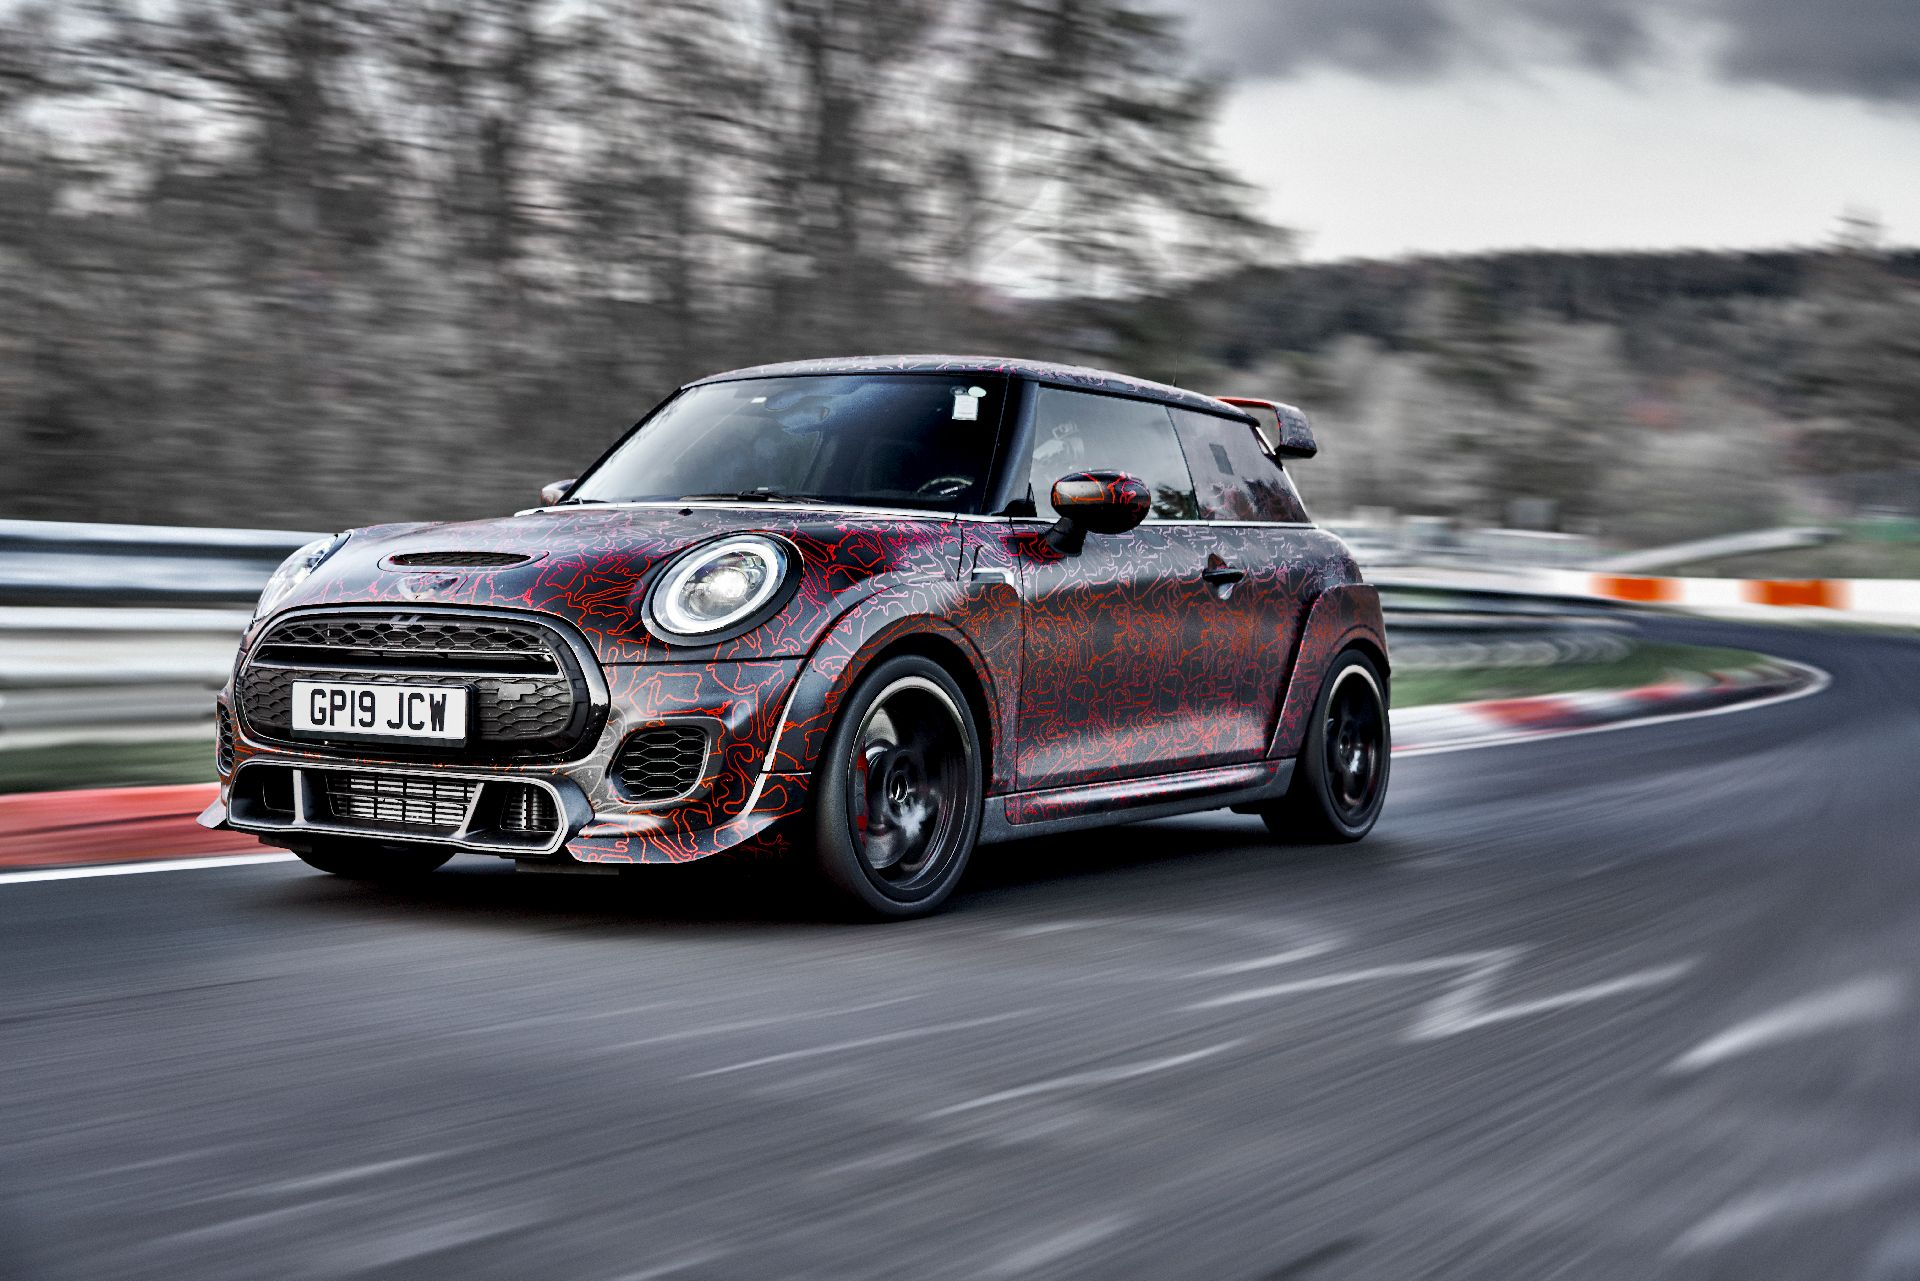 2b310187-mini-john-cooper-works-gp-20